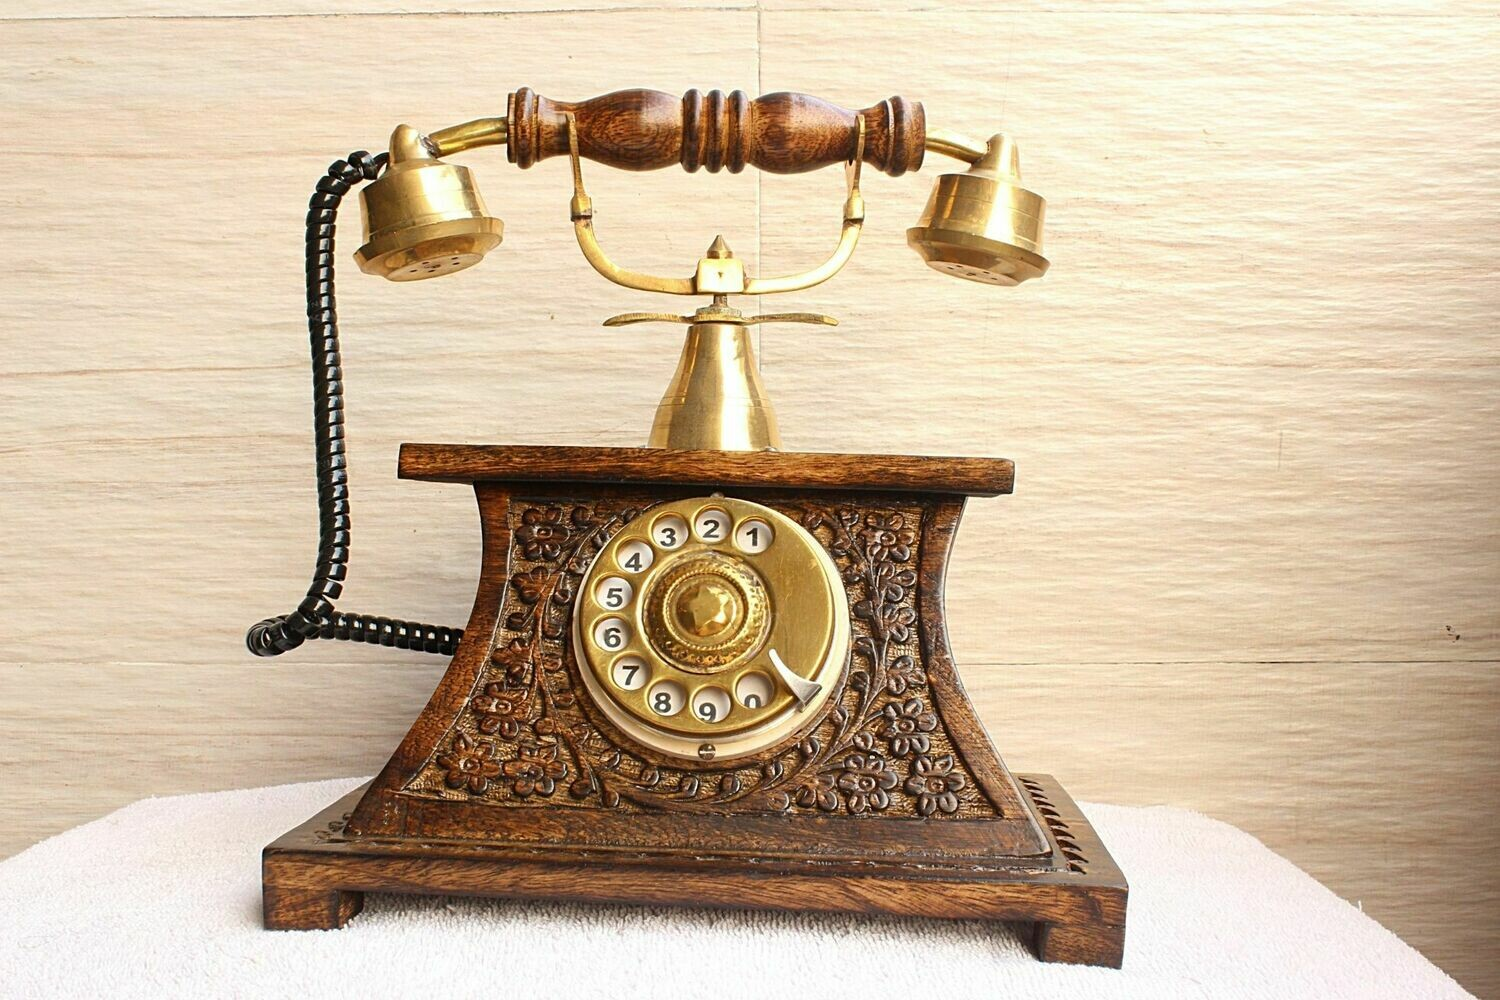 Traditional Vintage Royal Look Wooden Telephone   Old Fashion Rotatory Numbers Dial   Antique Design Rotary Landline Phone